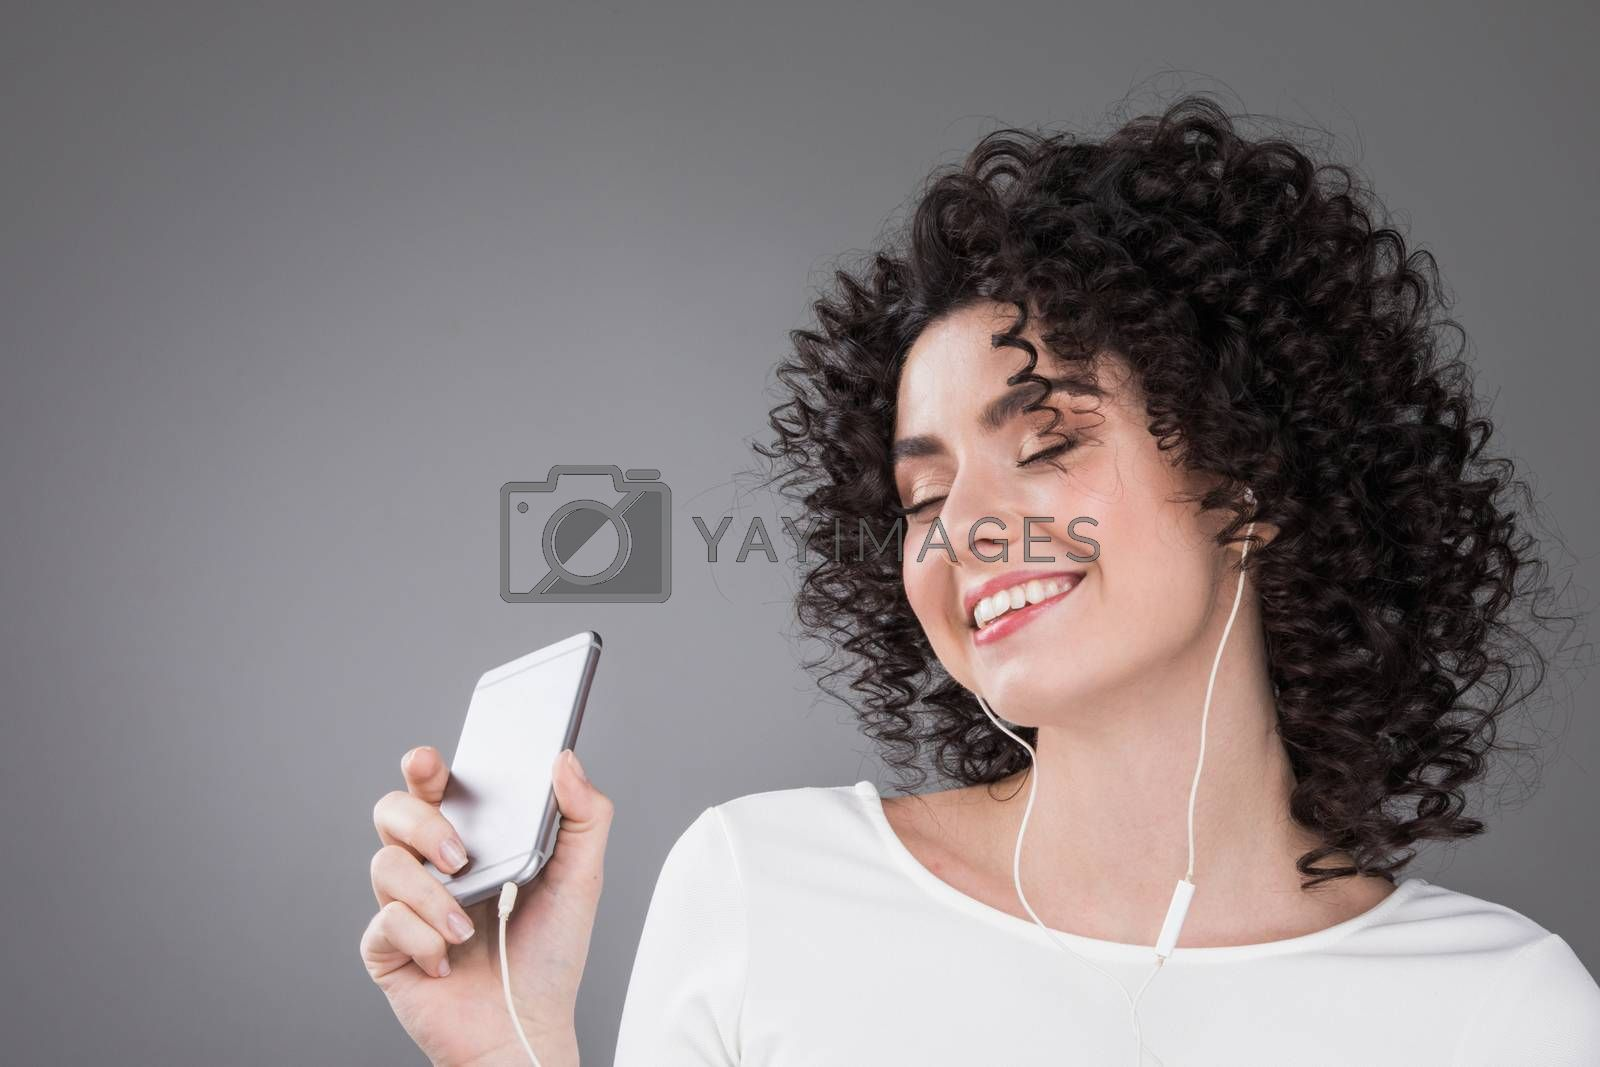 Woman in white dancing with earphones headphones listening to music on phone, gray background